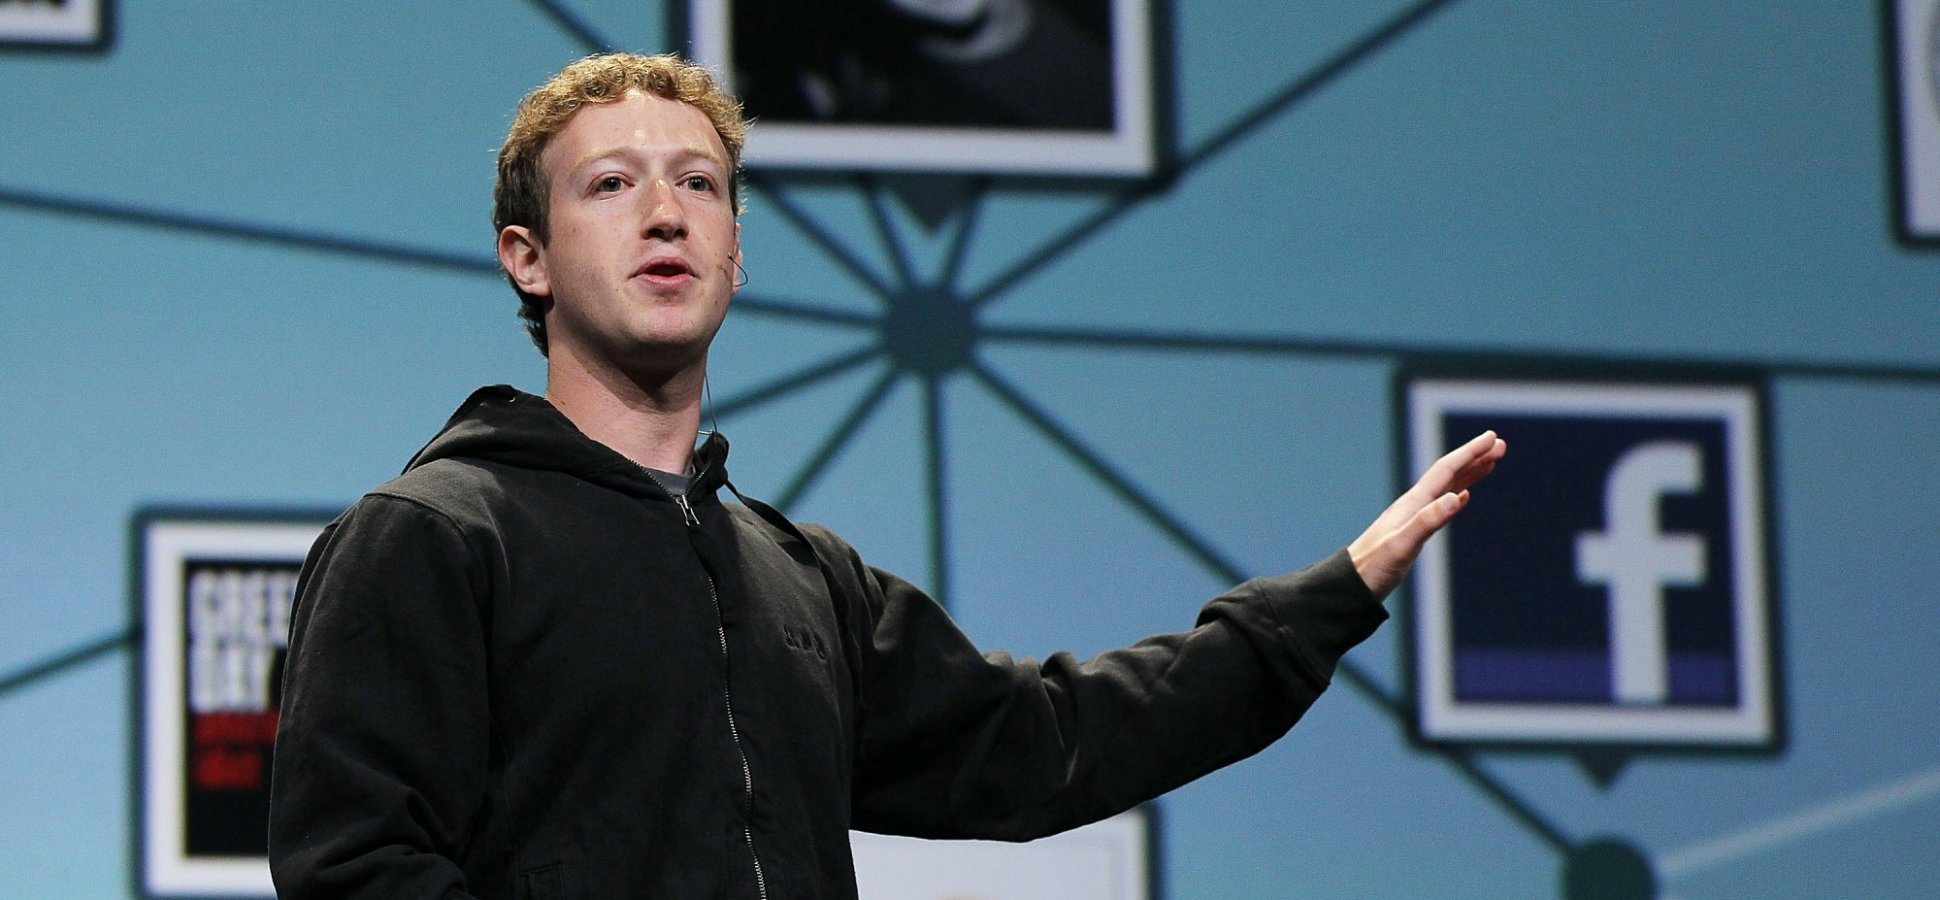 Mark Zuckerberg Explains Why 1 Career Problem Could Mean You're an Entrepreneur